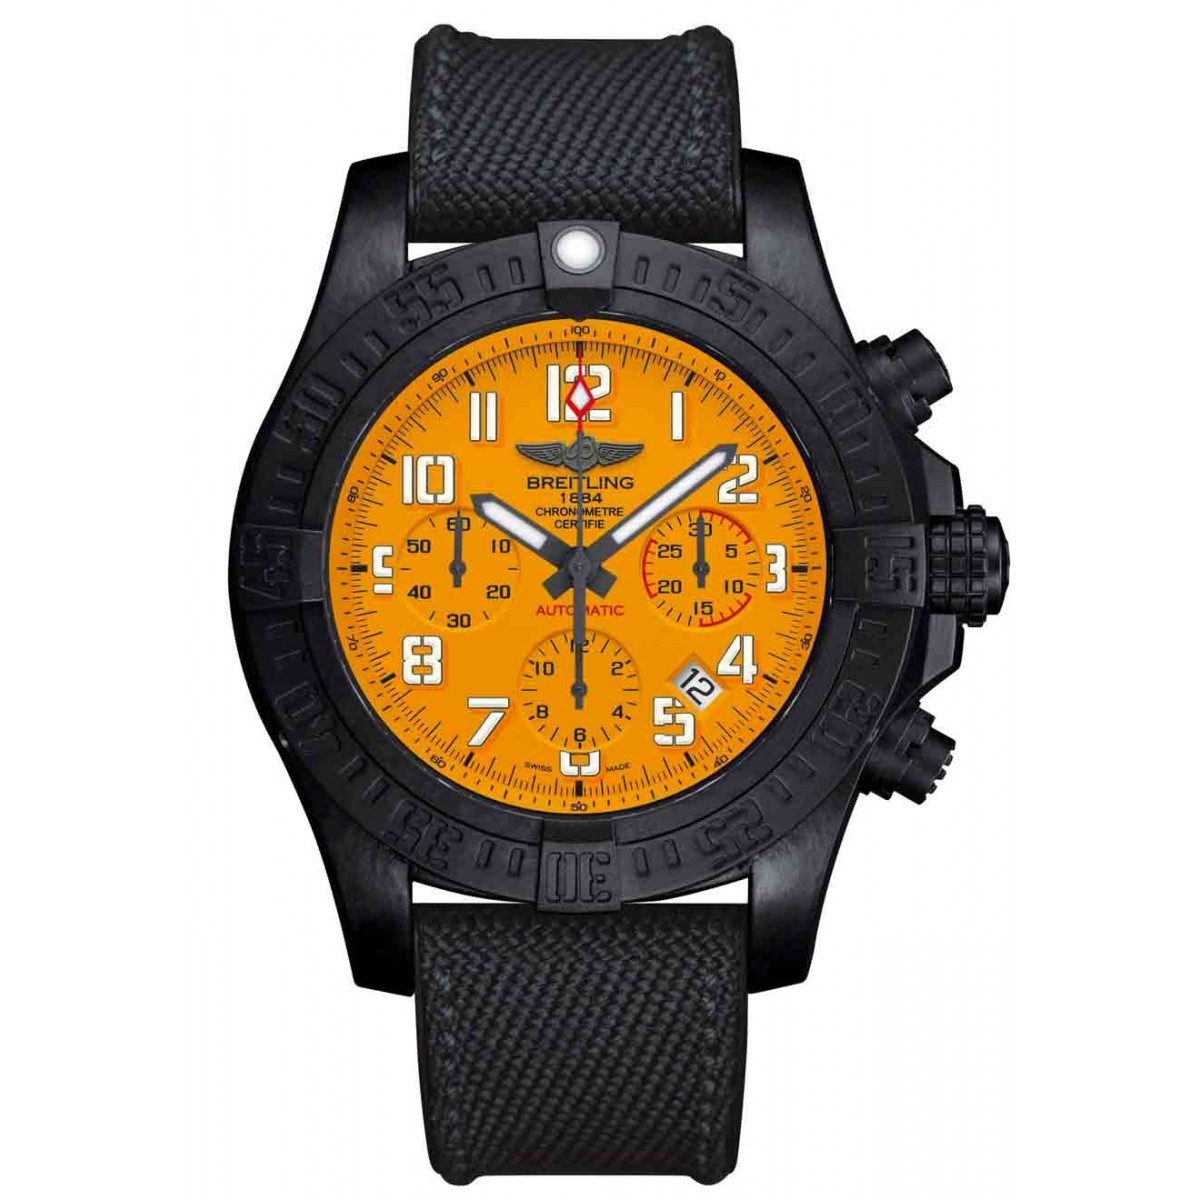 Breitling Hurricane 12h - 100 M - ∅45 mm, Esfera Cobra Yellow, Military caucho